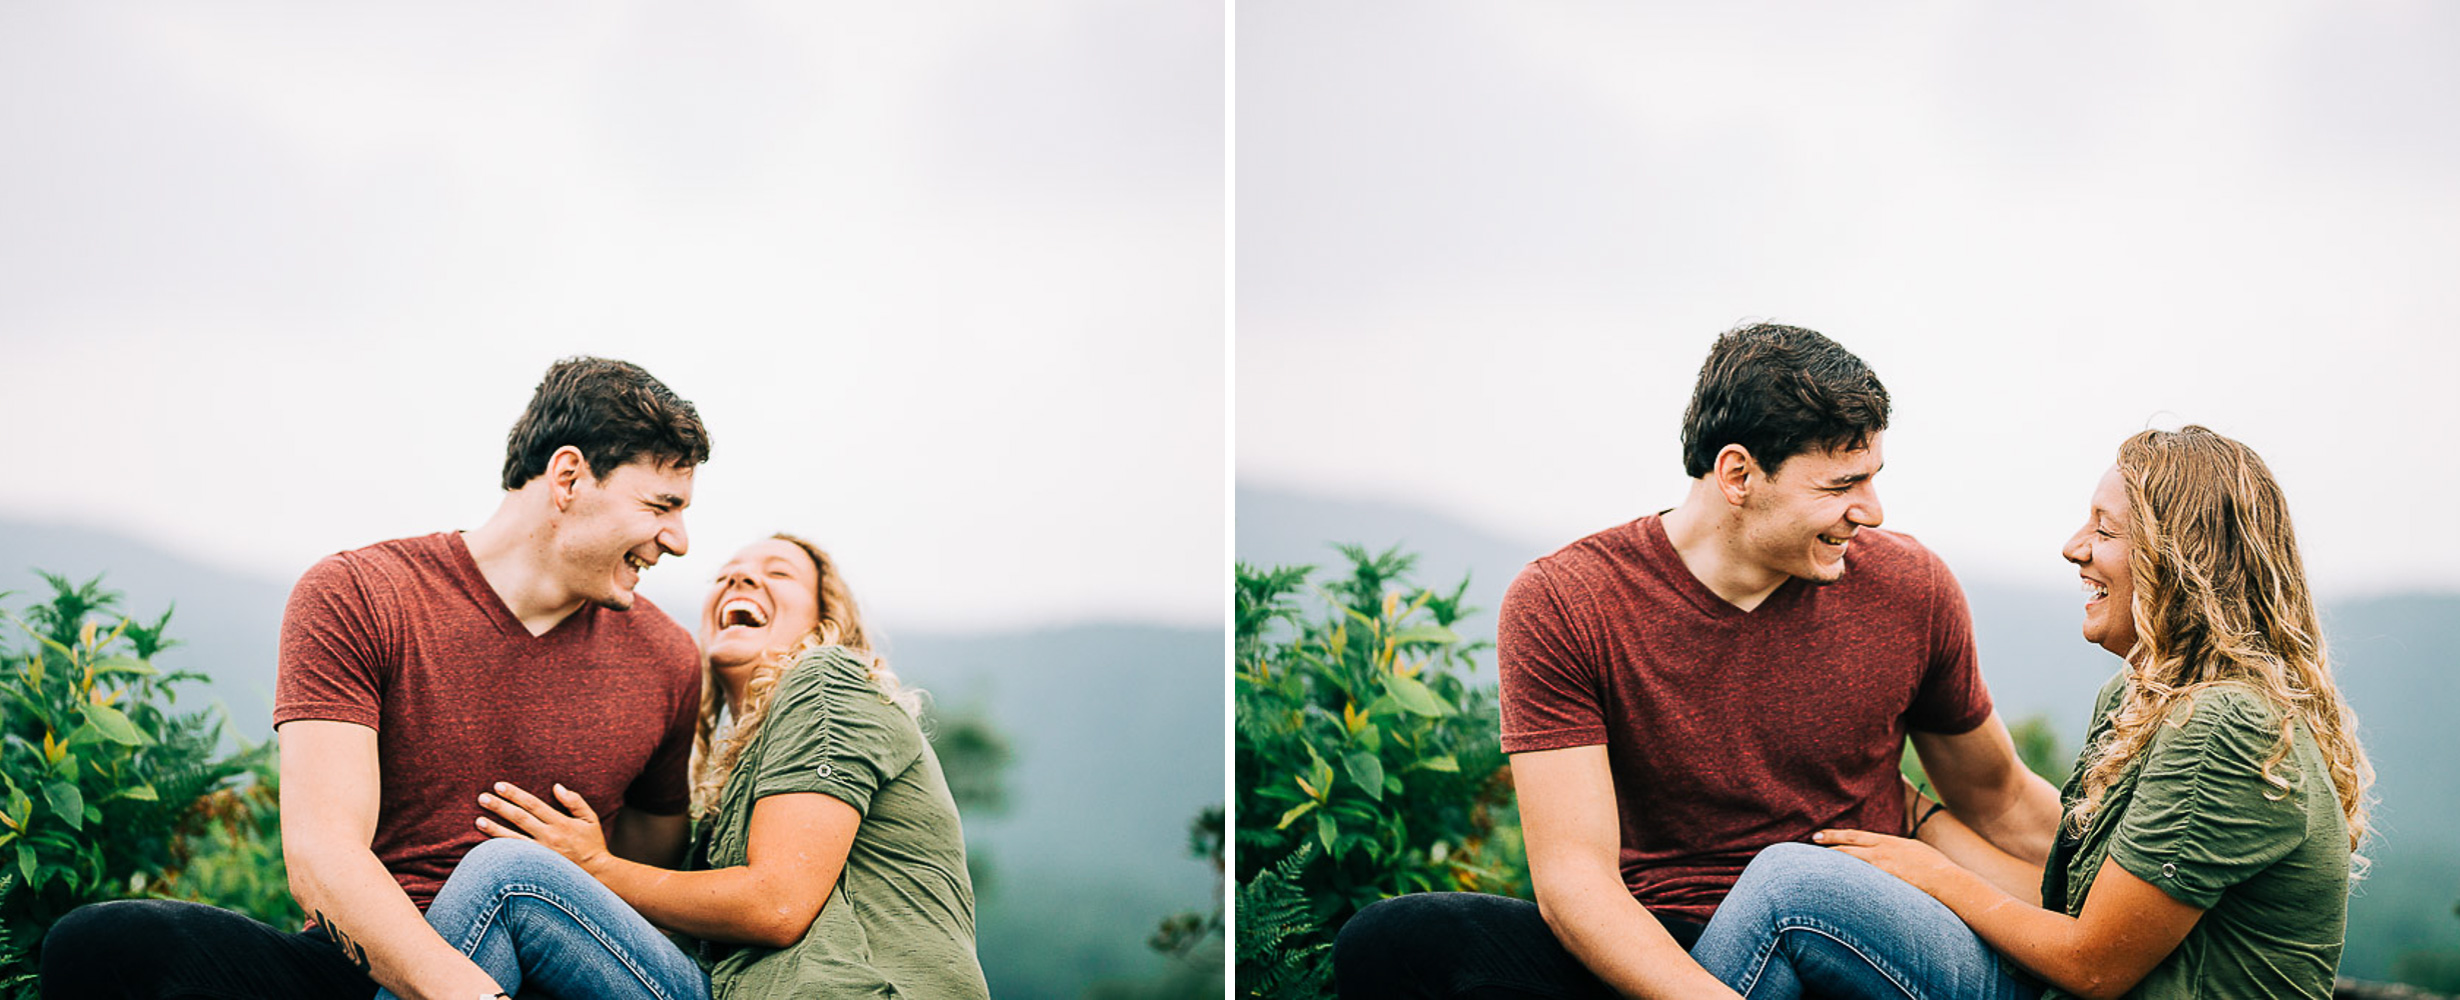 Mountain Engagement, Summer Engaement, Engaged, Engaement Portriats, Engagement Pictures, 15.jpg